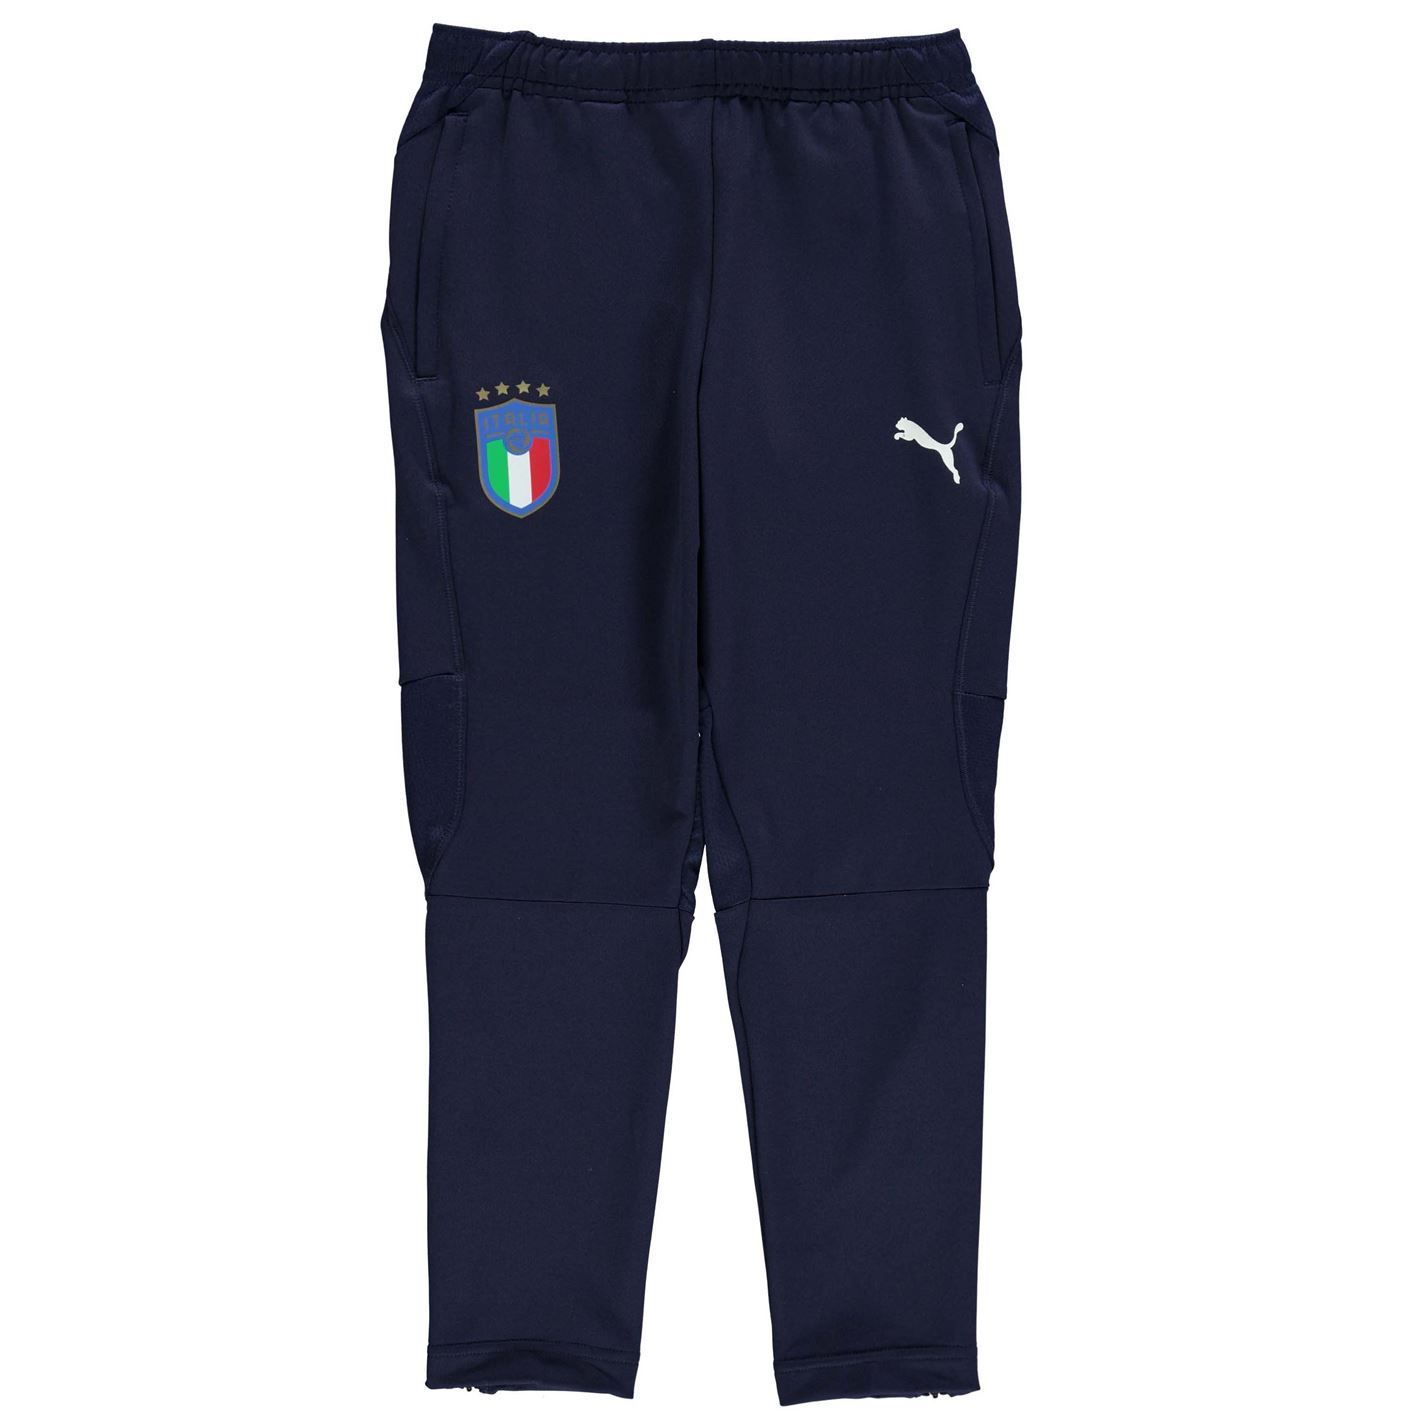 6532d6009ca6 ... Puma Italy Training Pants Juniors Blue Football Soccer Track Sweat  Bottoms ...